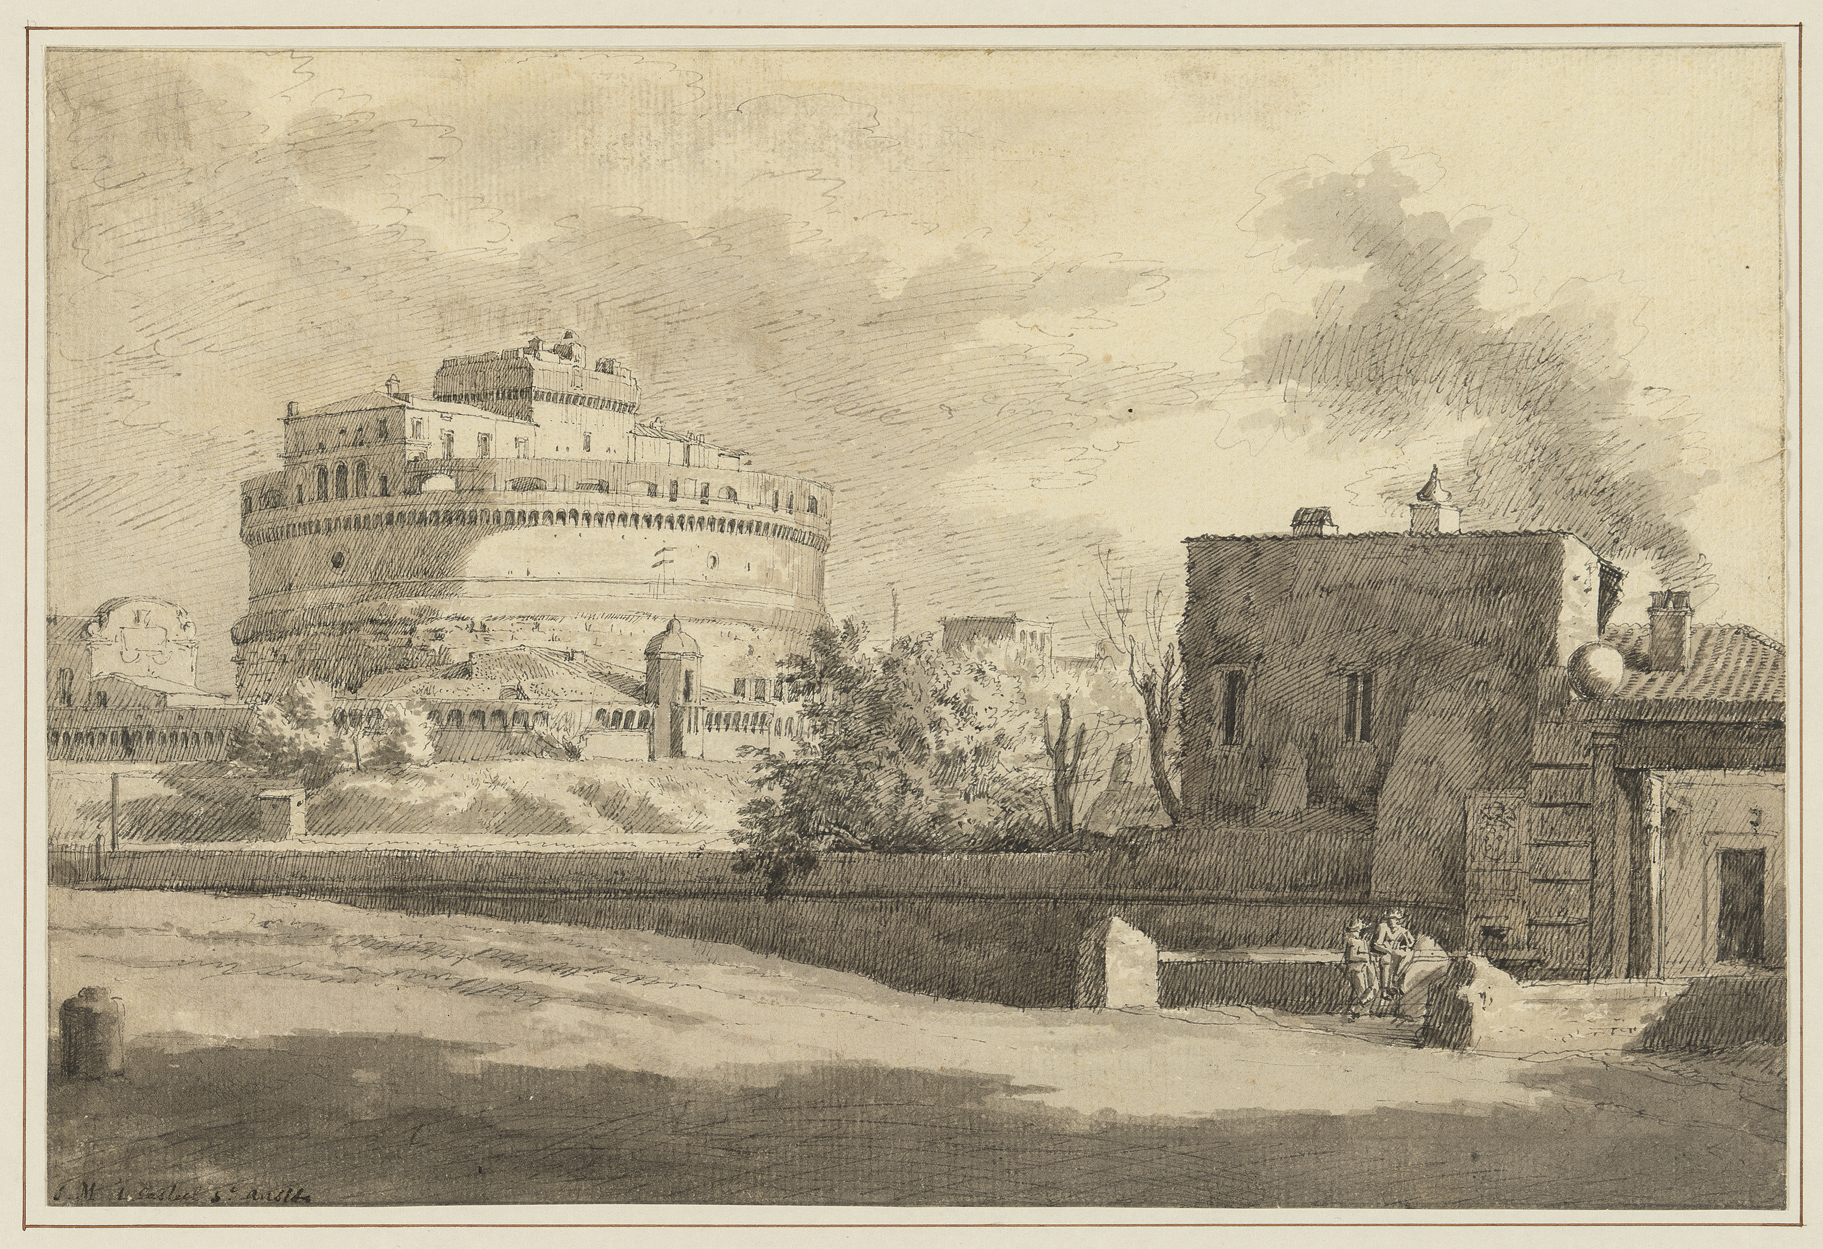 Fig 3. Isaac de Moucheron (1667-1744), View of the Castel Sant'Angelo in Rome, ca. 1694-1697, inv. 4060/2647